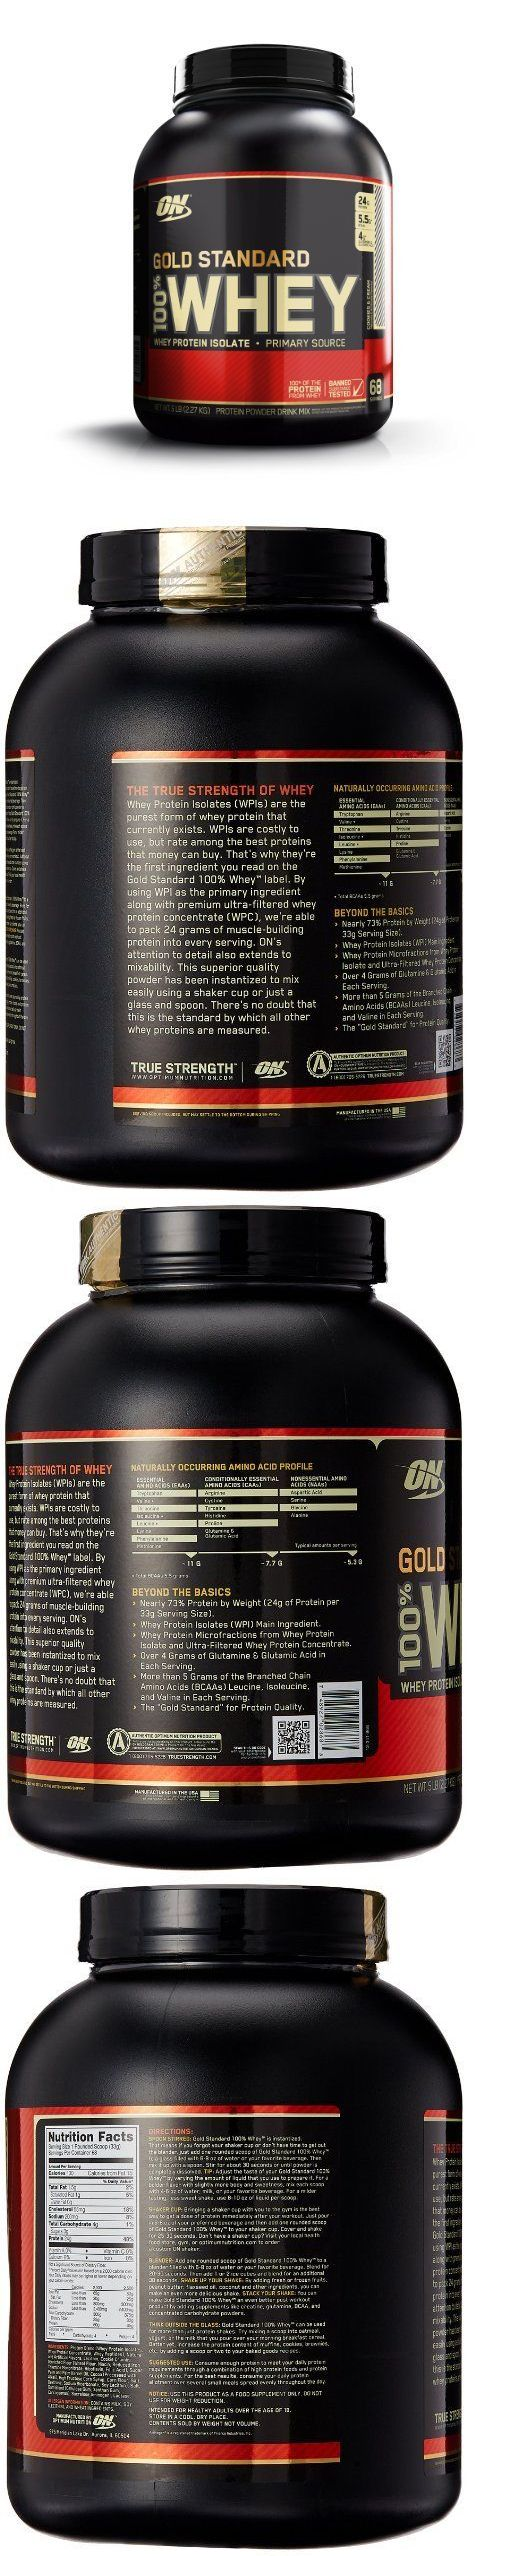 Protein Shakes and Bodybuilding: Optimum Nutrition On 100% Whey Protein Gold Standard 5 Lbs **Choose Your Flavor* -> BUY IT NOW ONLY: $56.84 on eBay!